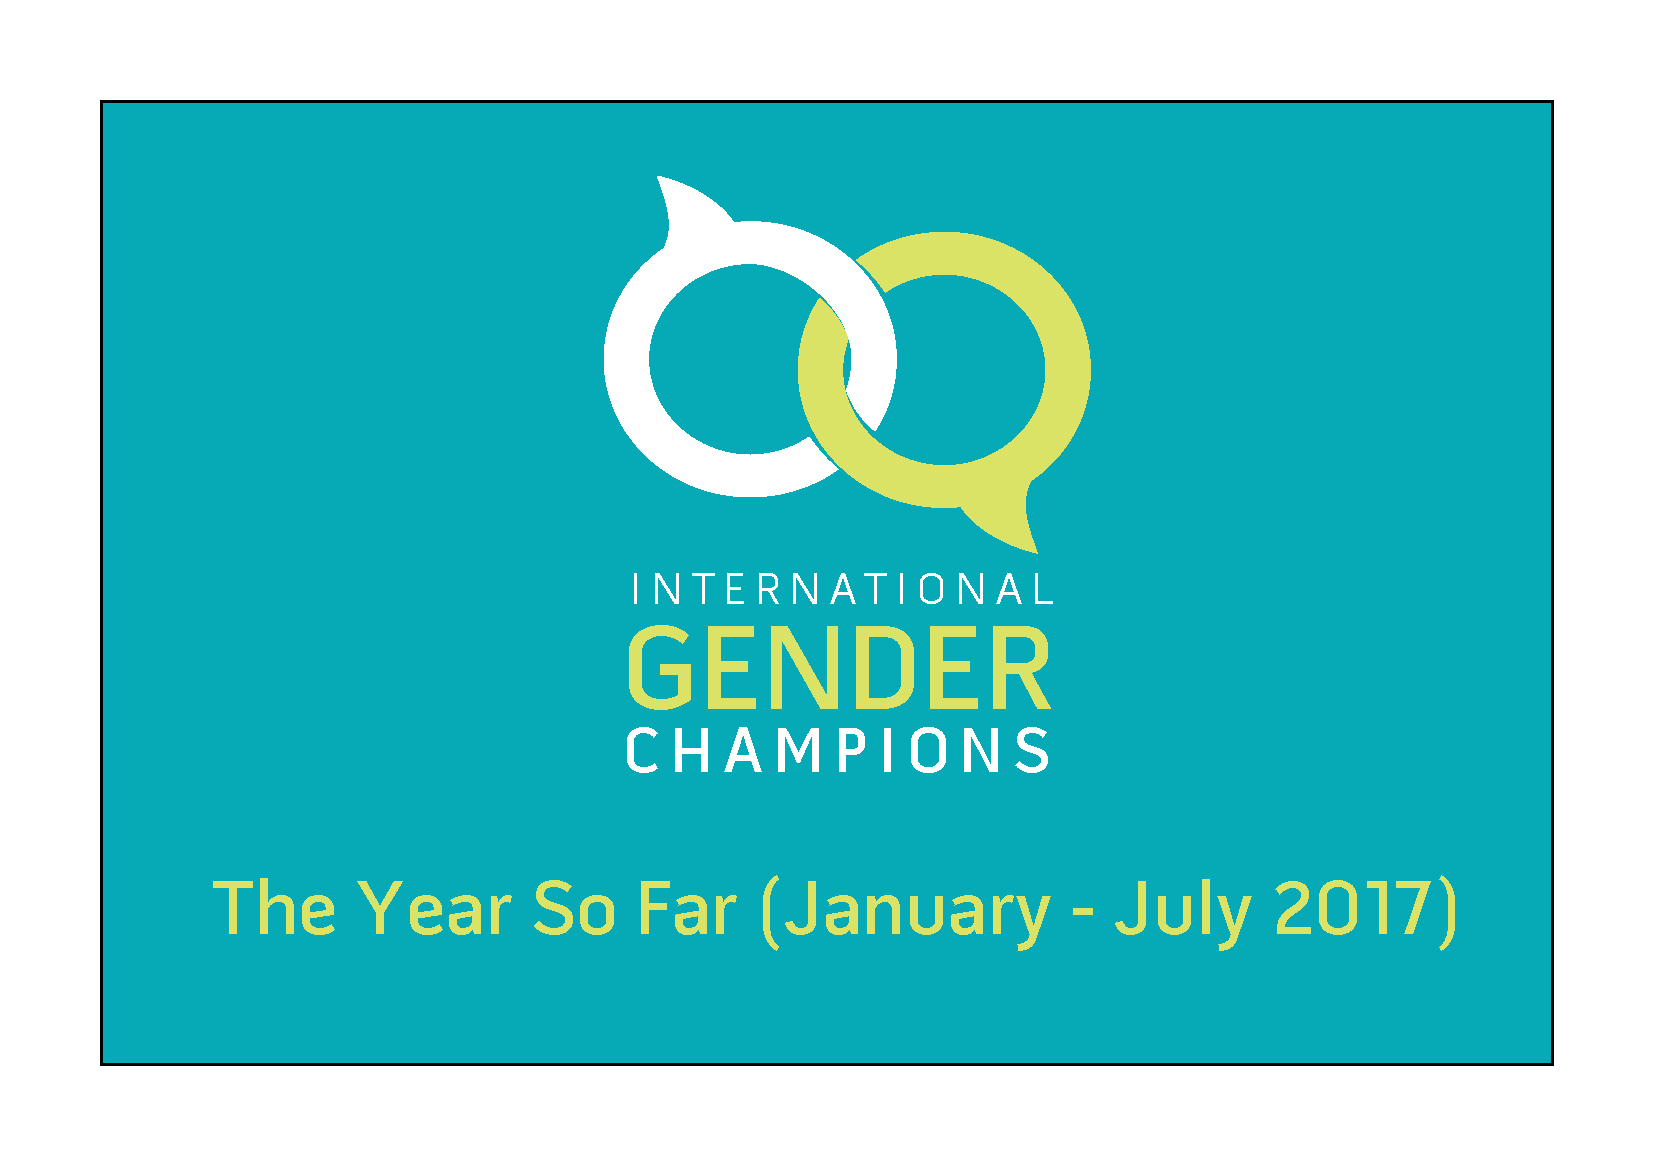 IGC - The Year So Far (January – July 2017)